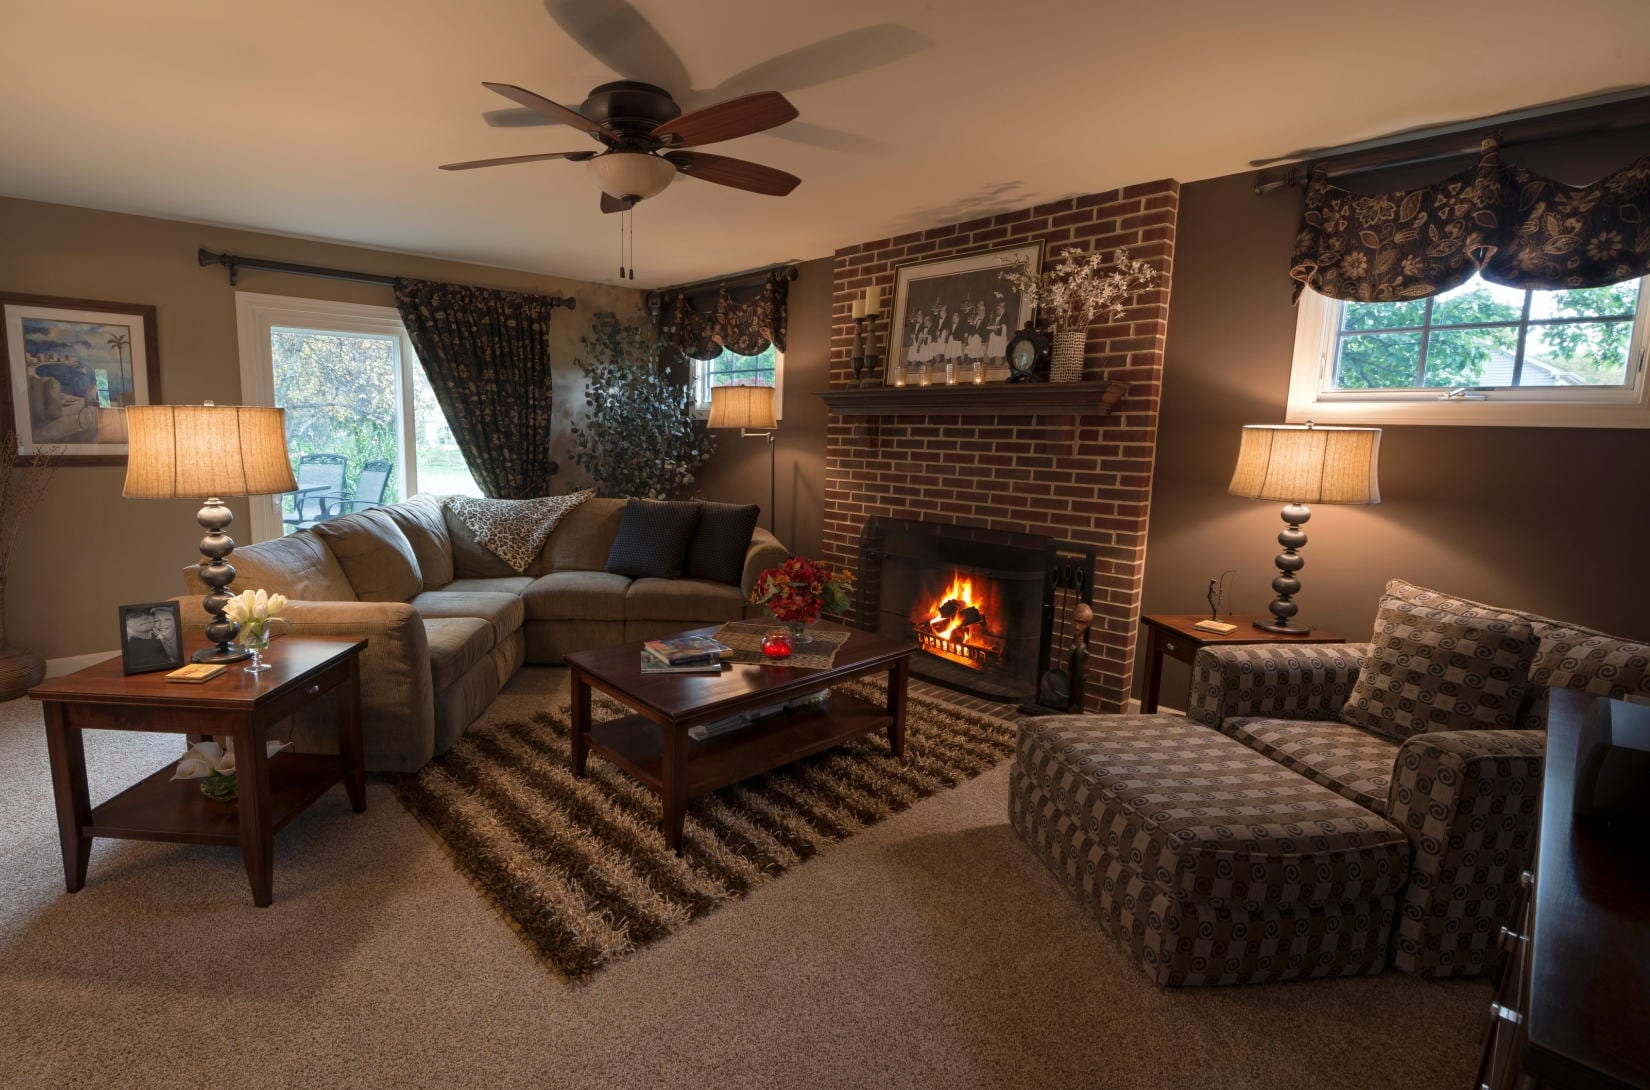 Interior Design Furniture Packages in your budget